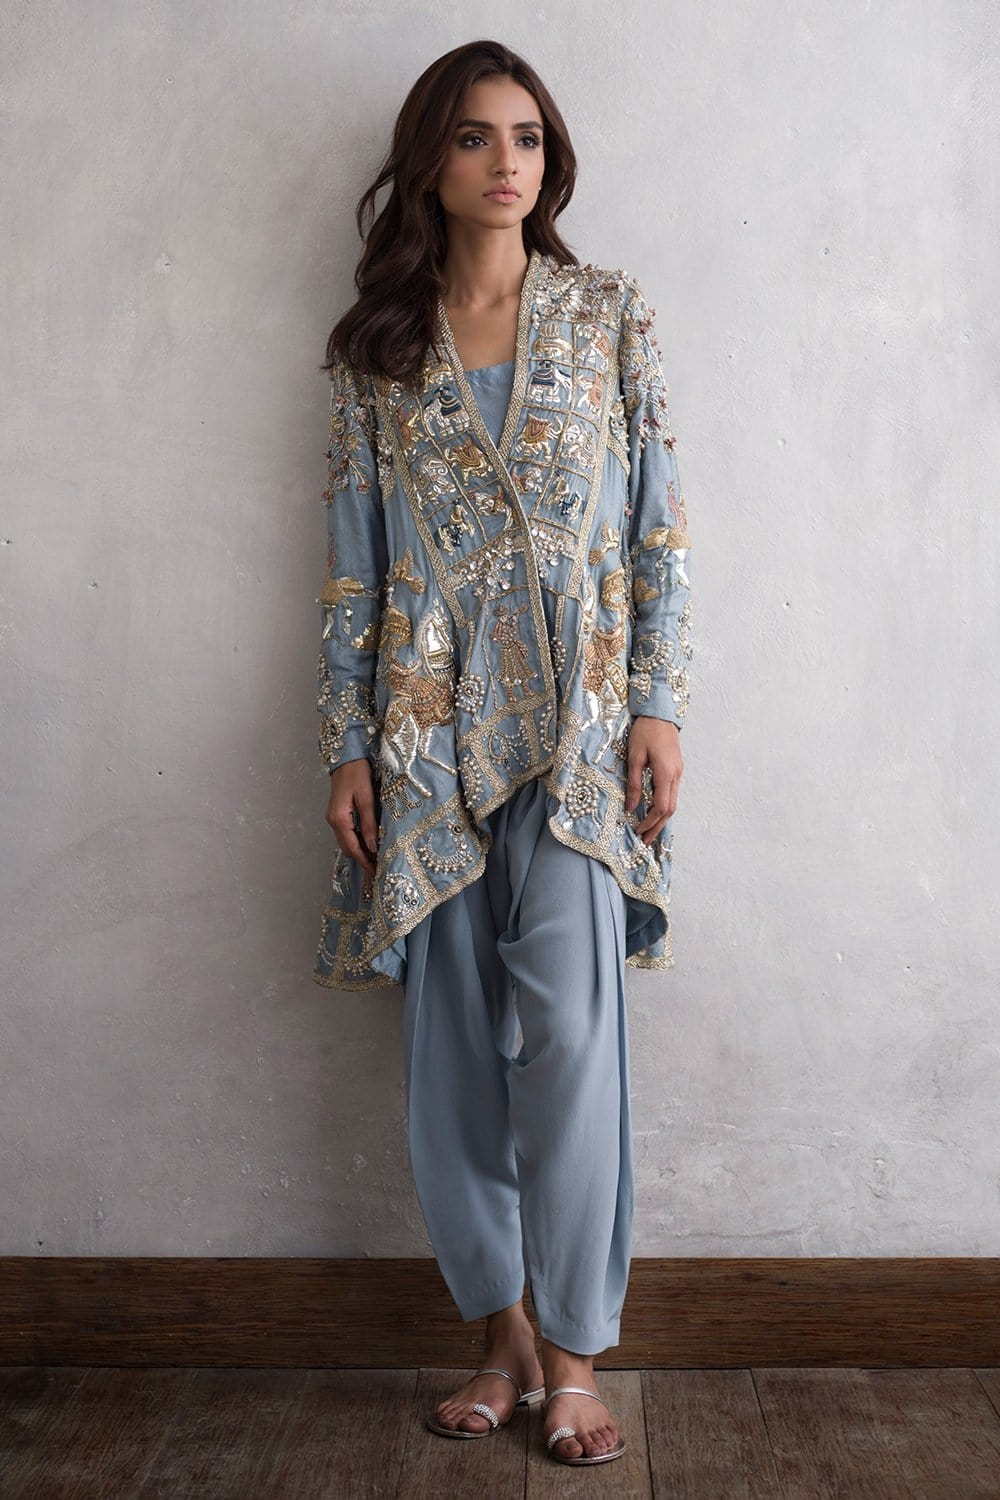 Nida Azwer - Hand Embroidered Zardozi, Resham And Vasli Jacket With Camisole.